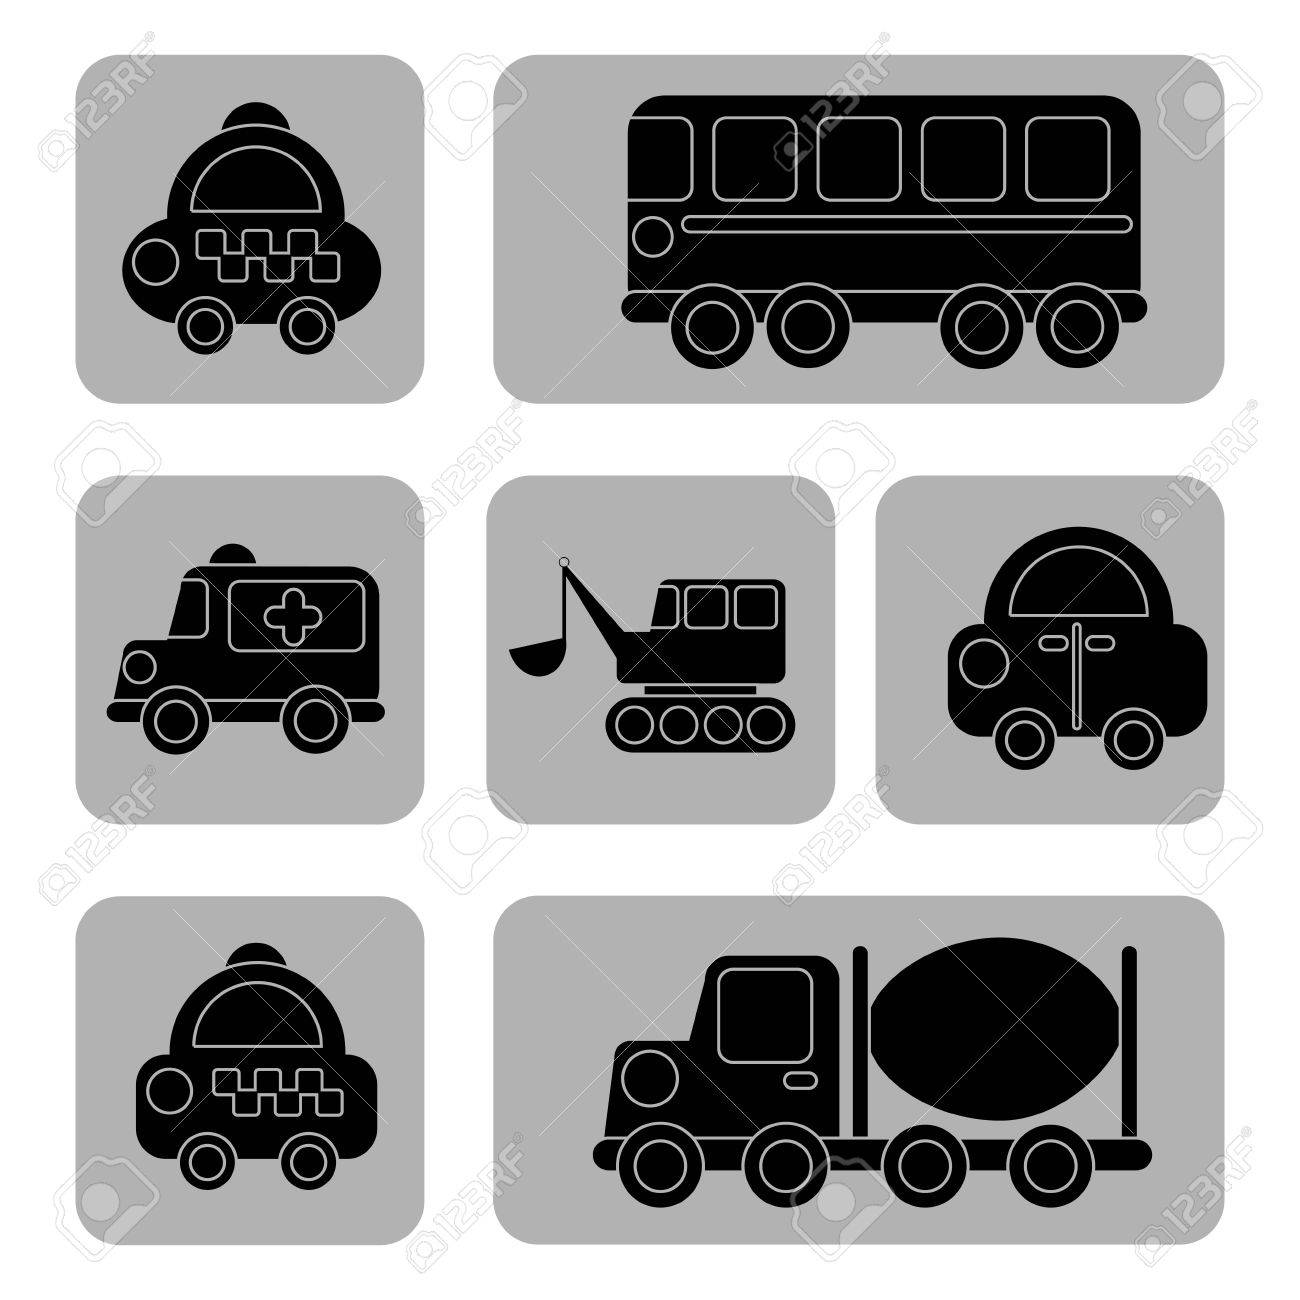 transport design over white background vector illustration Stock Vector - 23539567